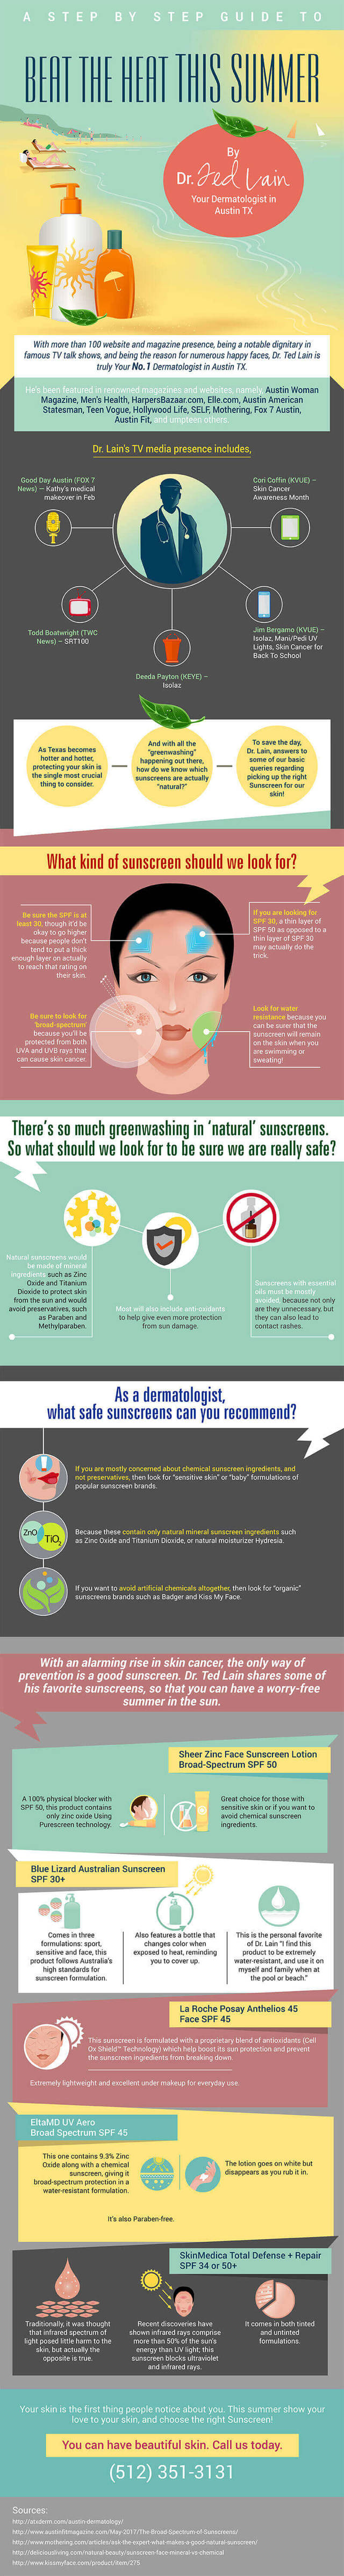 Sunscreeninfographic small